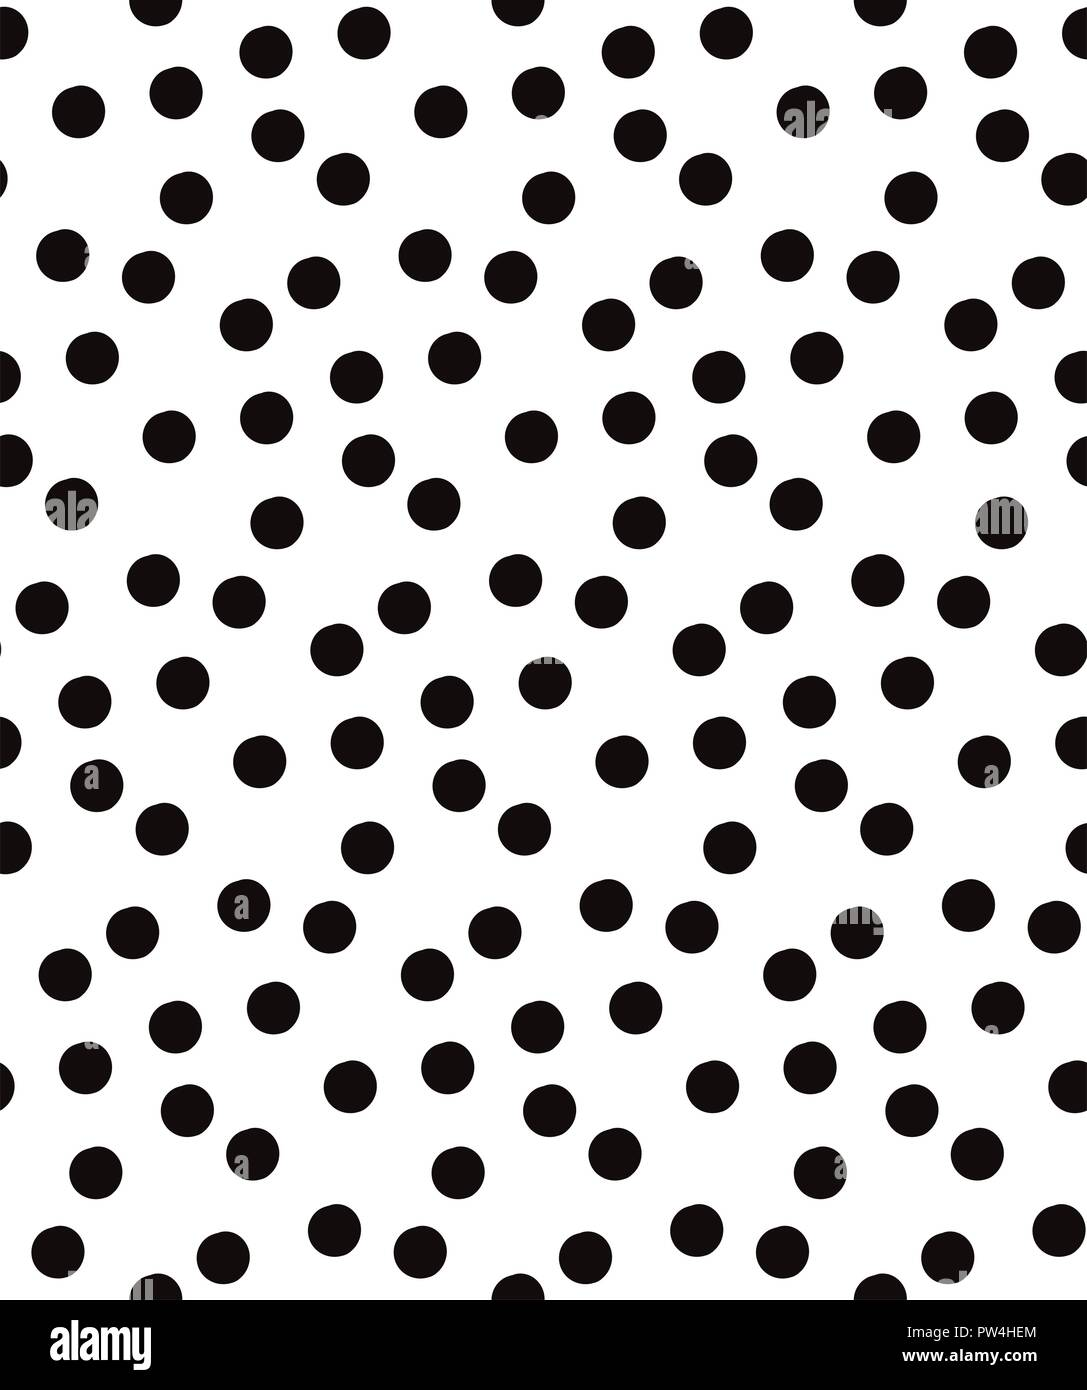 vector black polka dots seamless pattern on white background rh alamy com perfect black and white cat names black and white perfect combination